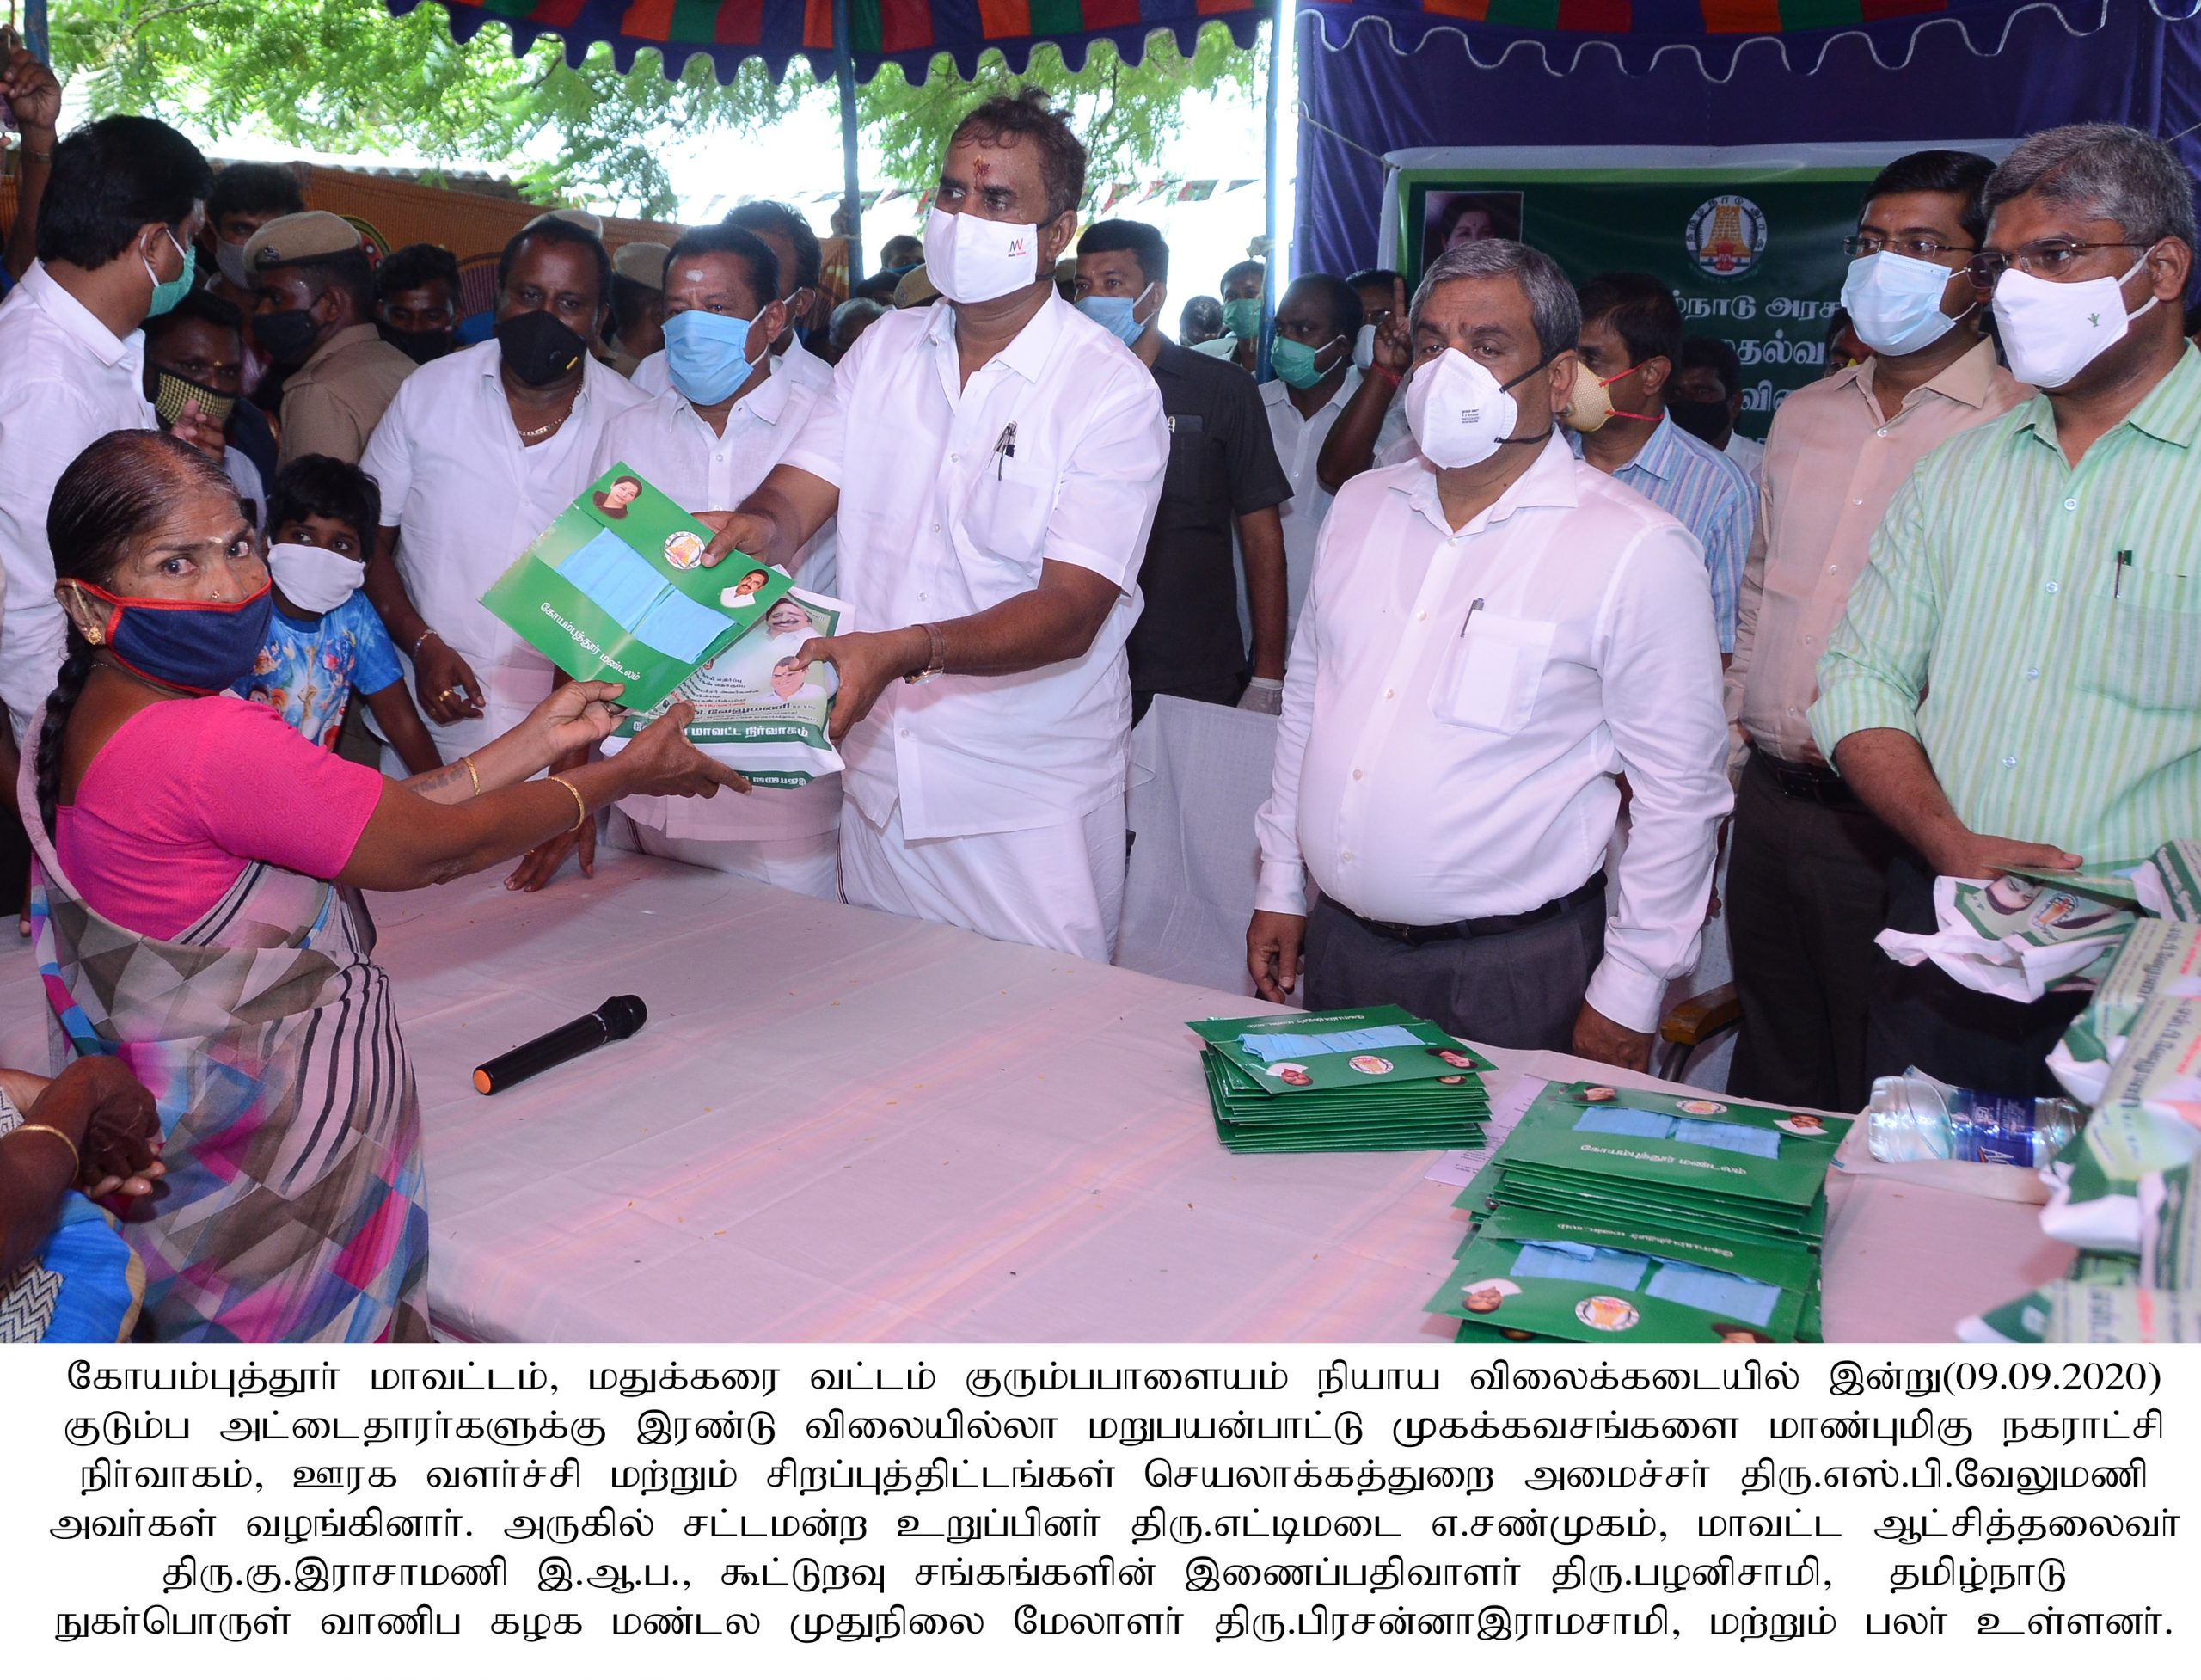 Honble Minister distributed Face masks at the Fair Price shops